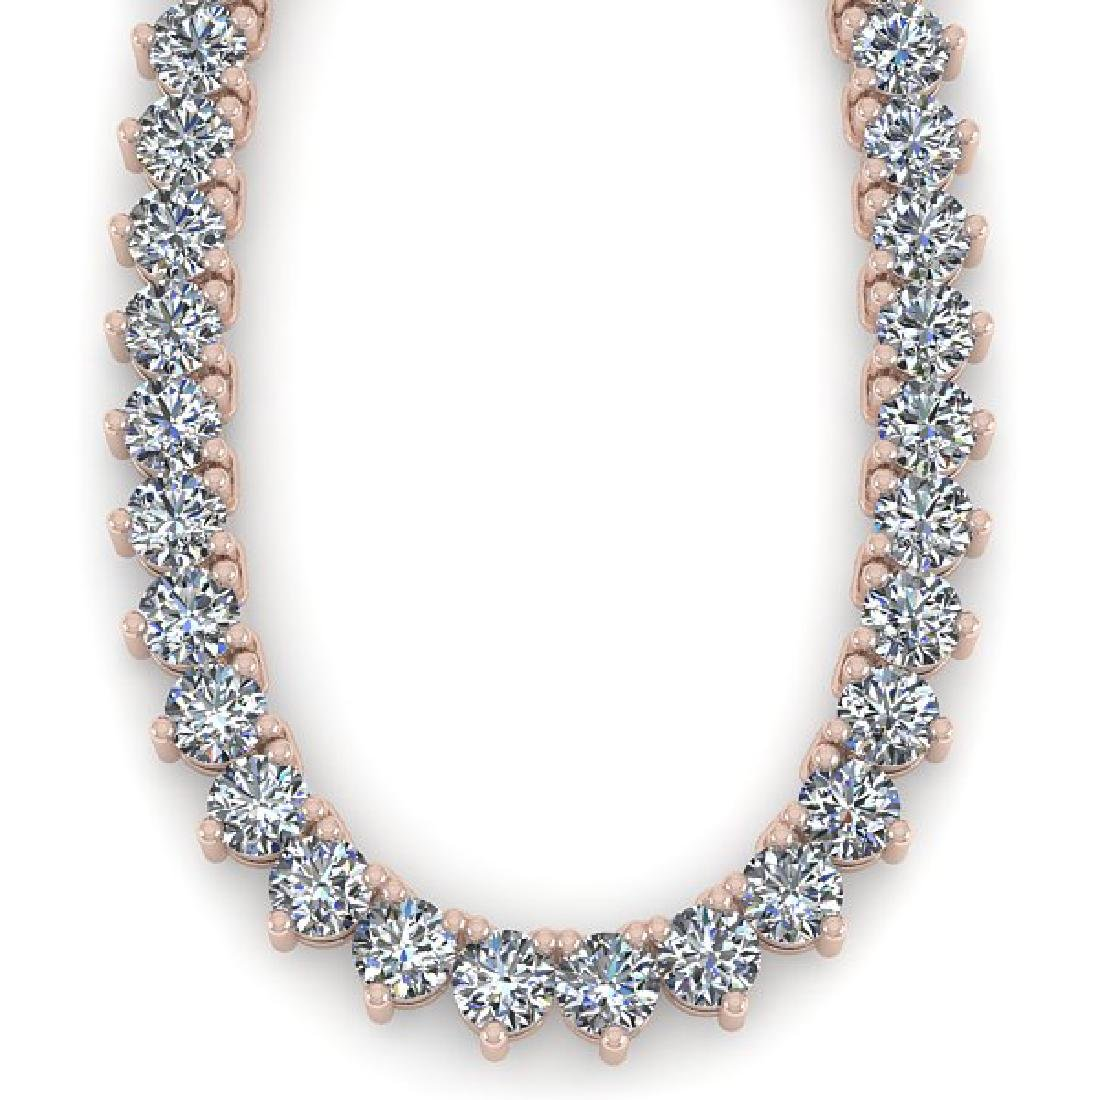 54 CTW Solitaire Certified SI Diamond Necklace 18K Rose - 2